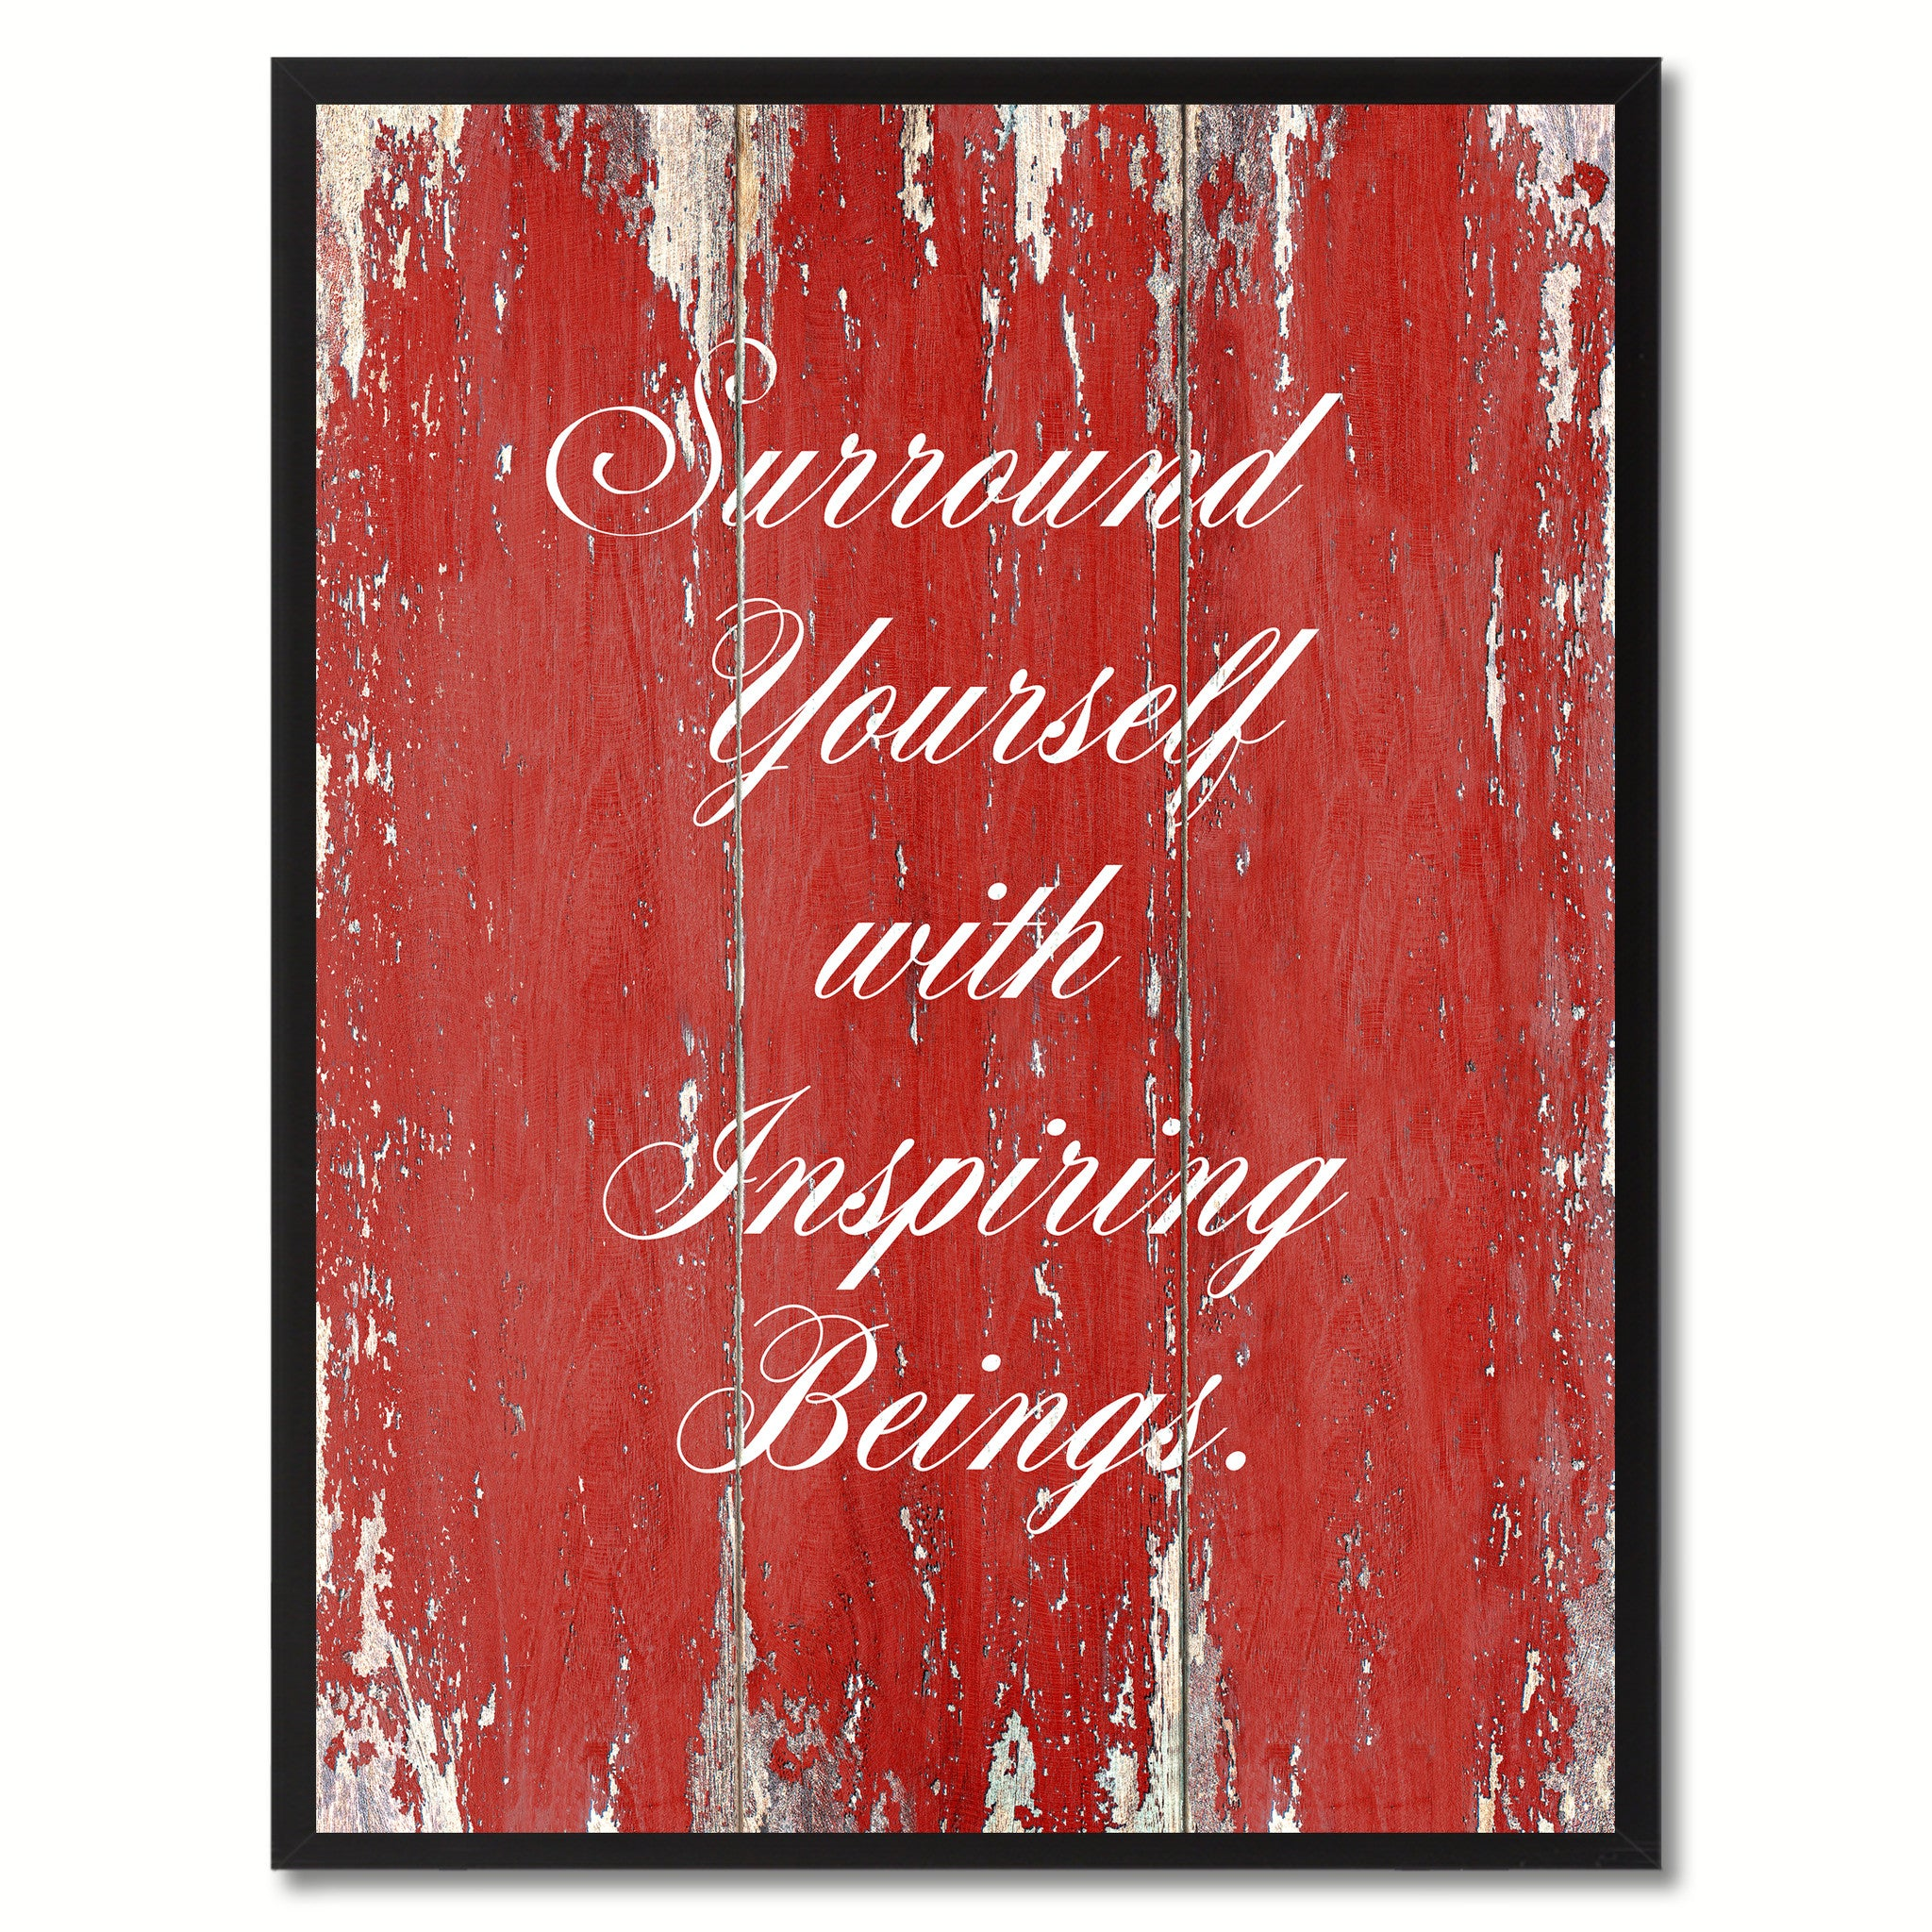 Surround Yourself With Inspiring Beings Saying Canvas Print, Black Picture Frame Home Decor Wall Art Gifts